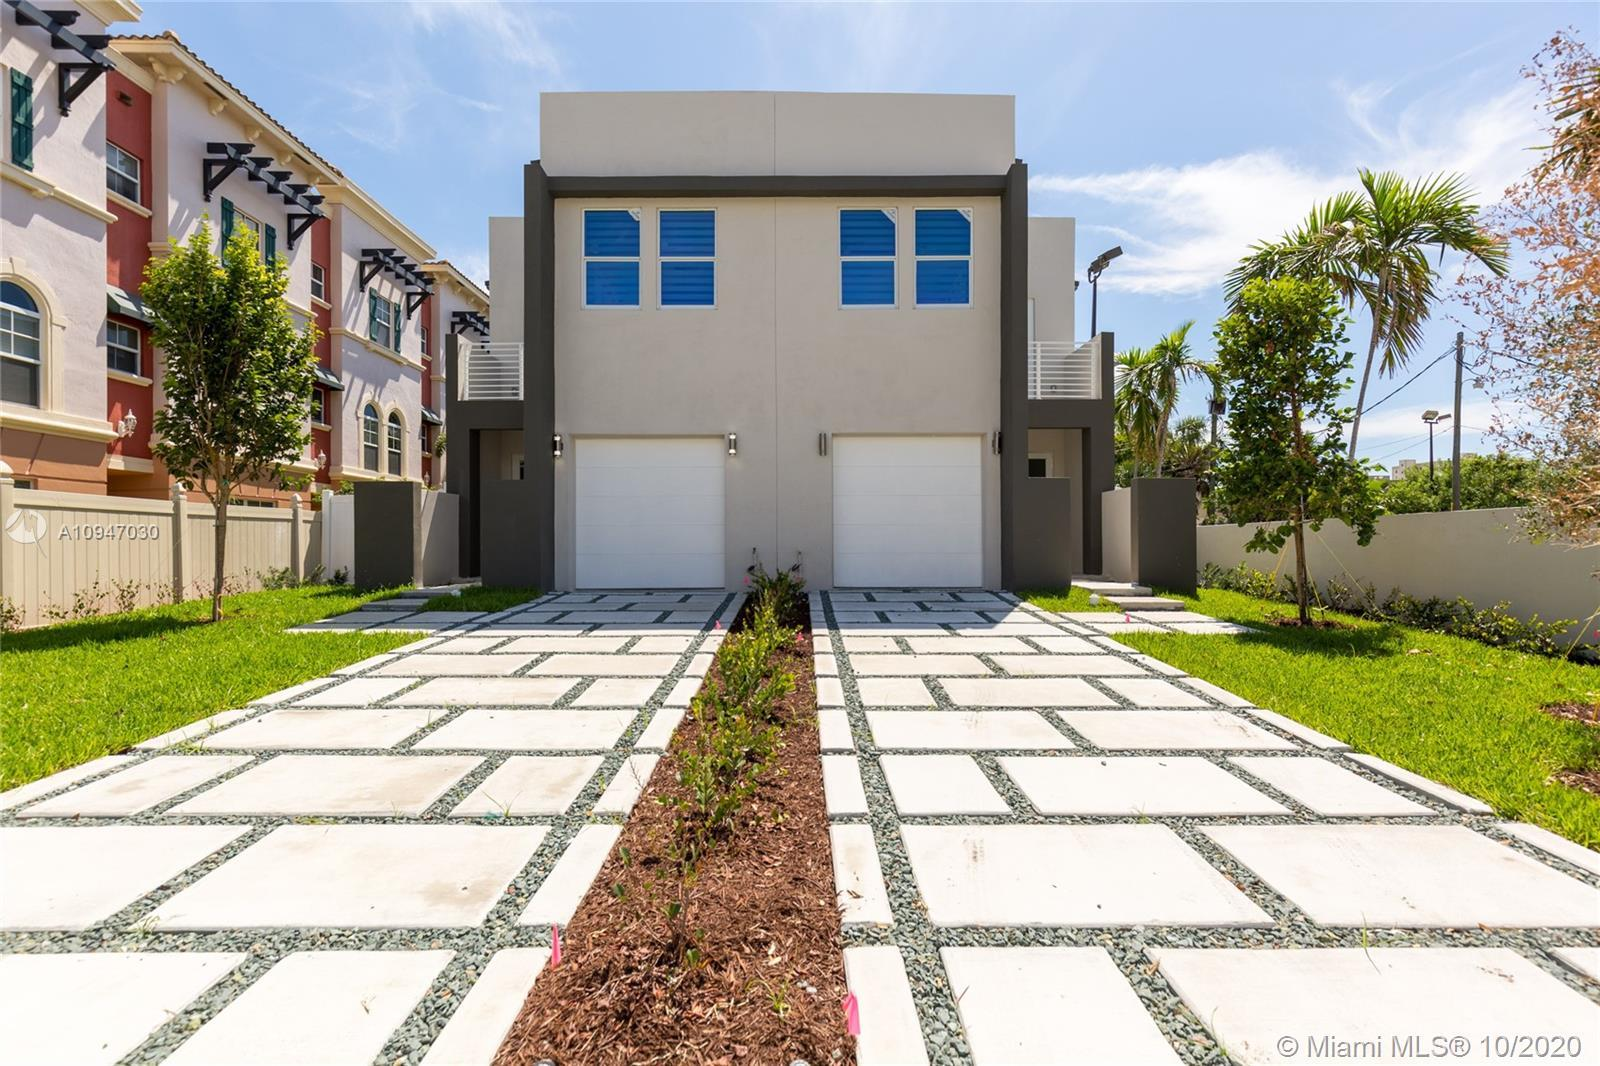 New Construction. Just Completed. Modern townhouses with 3 bedrooms plus den/office (can be used as